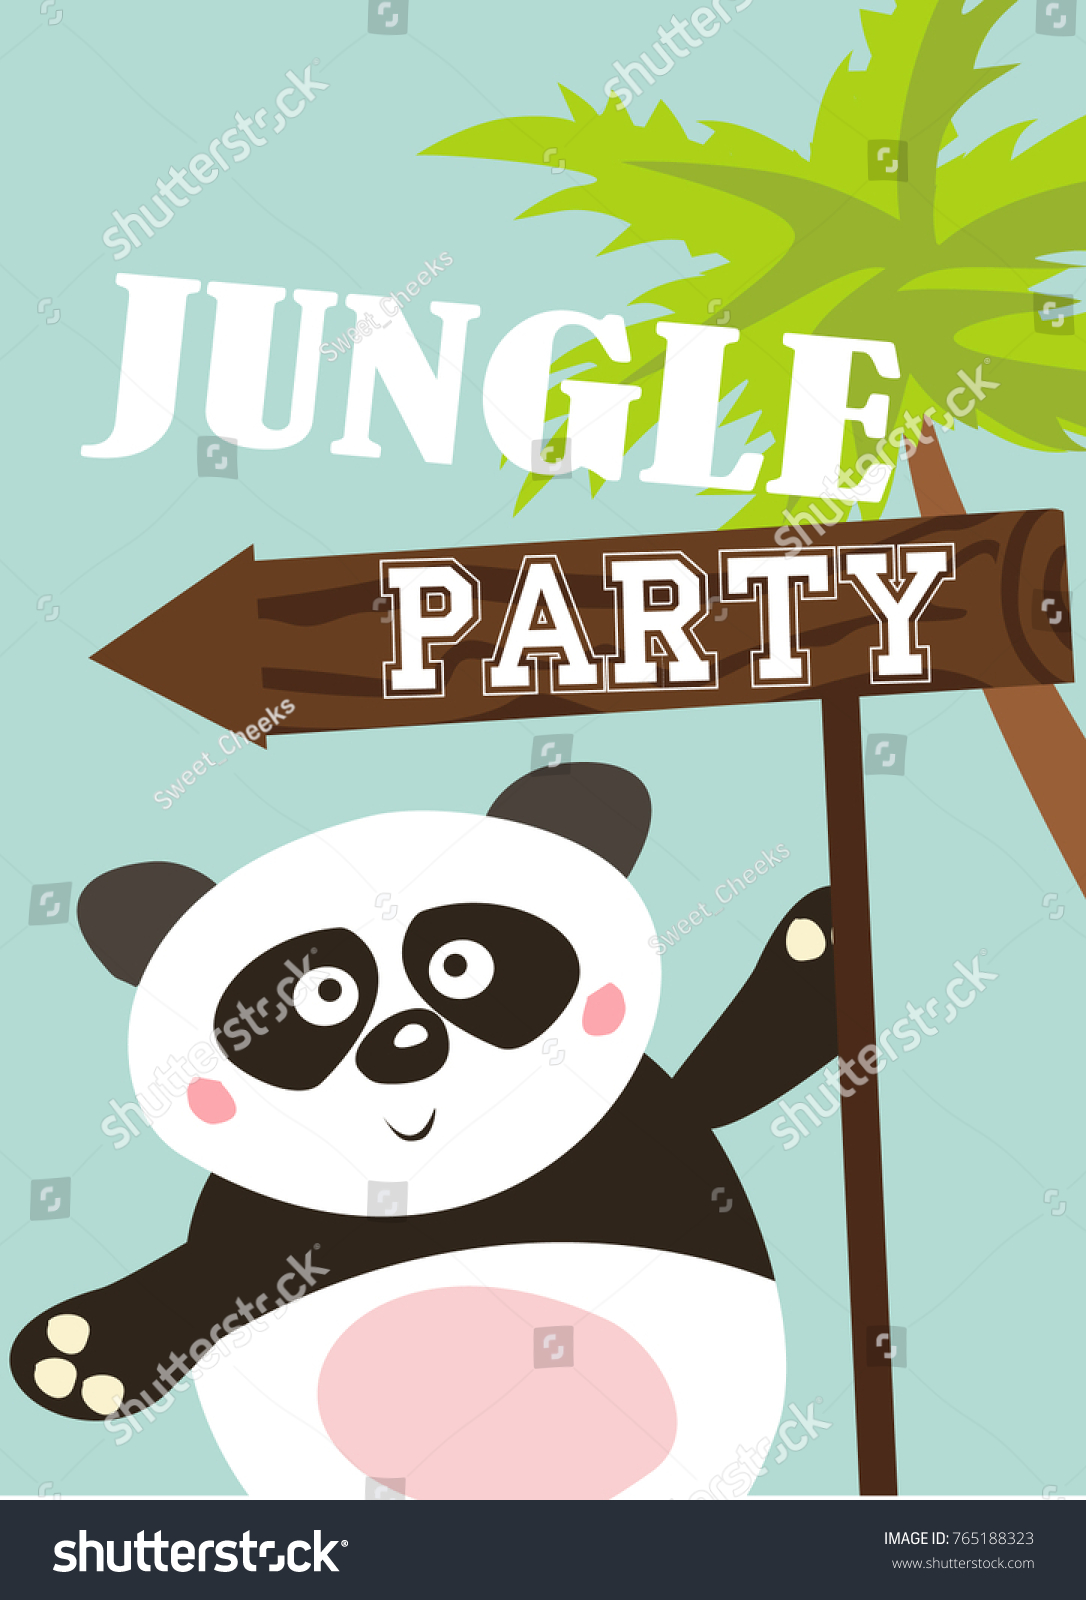 Jungle party invitation card stock vector 765188323 shutterstock jungle party invitation card stopboris Choice Image